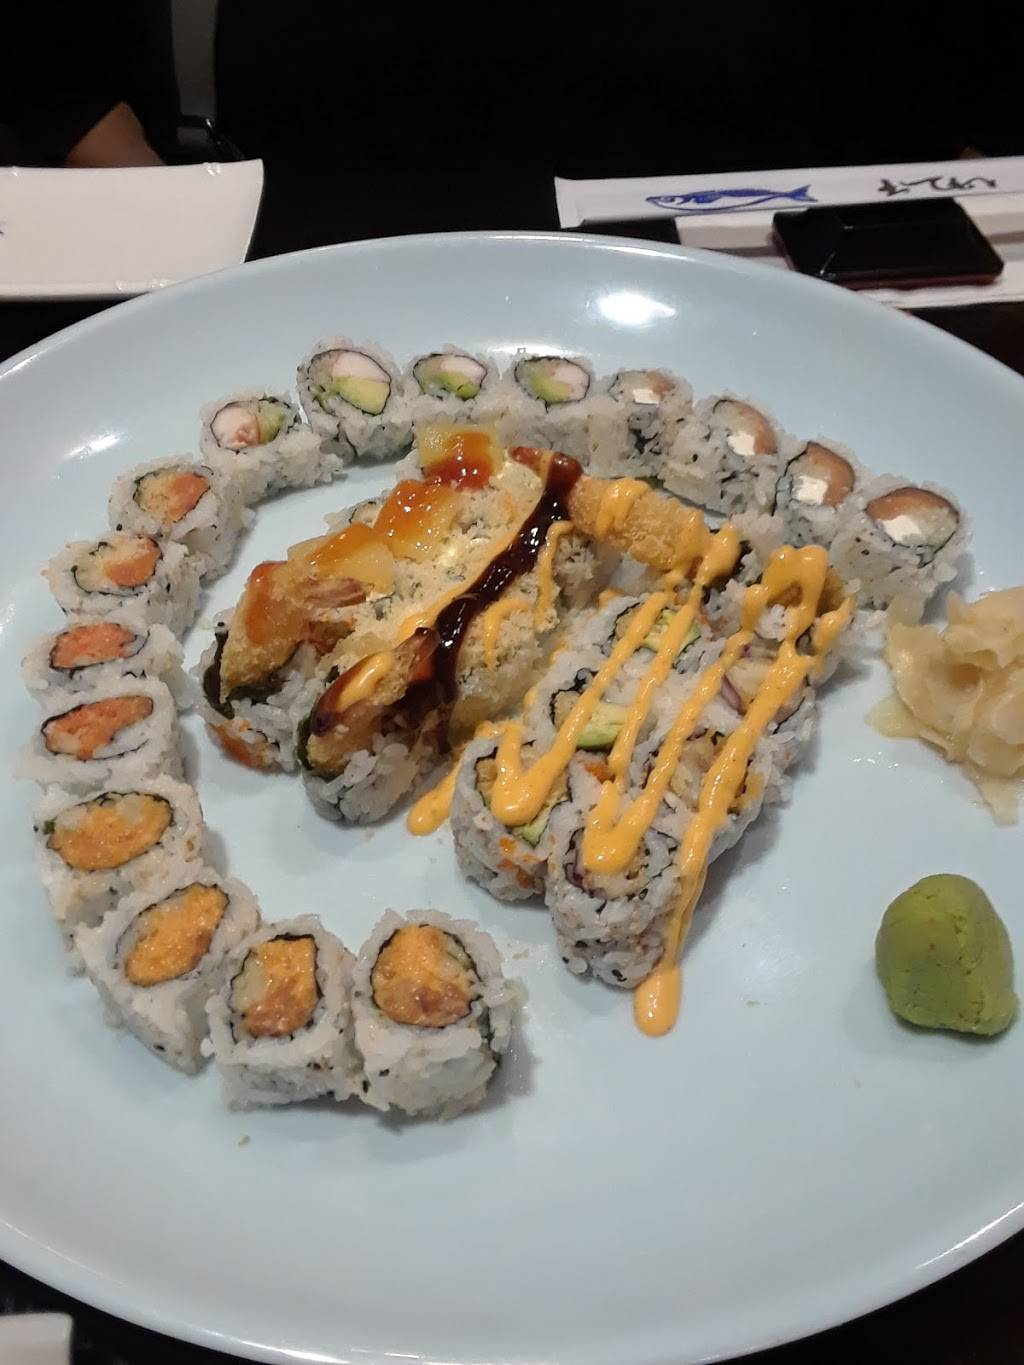 Origami Sushi |Best Sushi in Tampa (With images) | Best sushi ... | 1365x1024